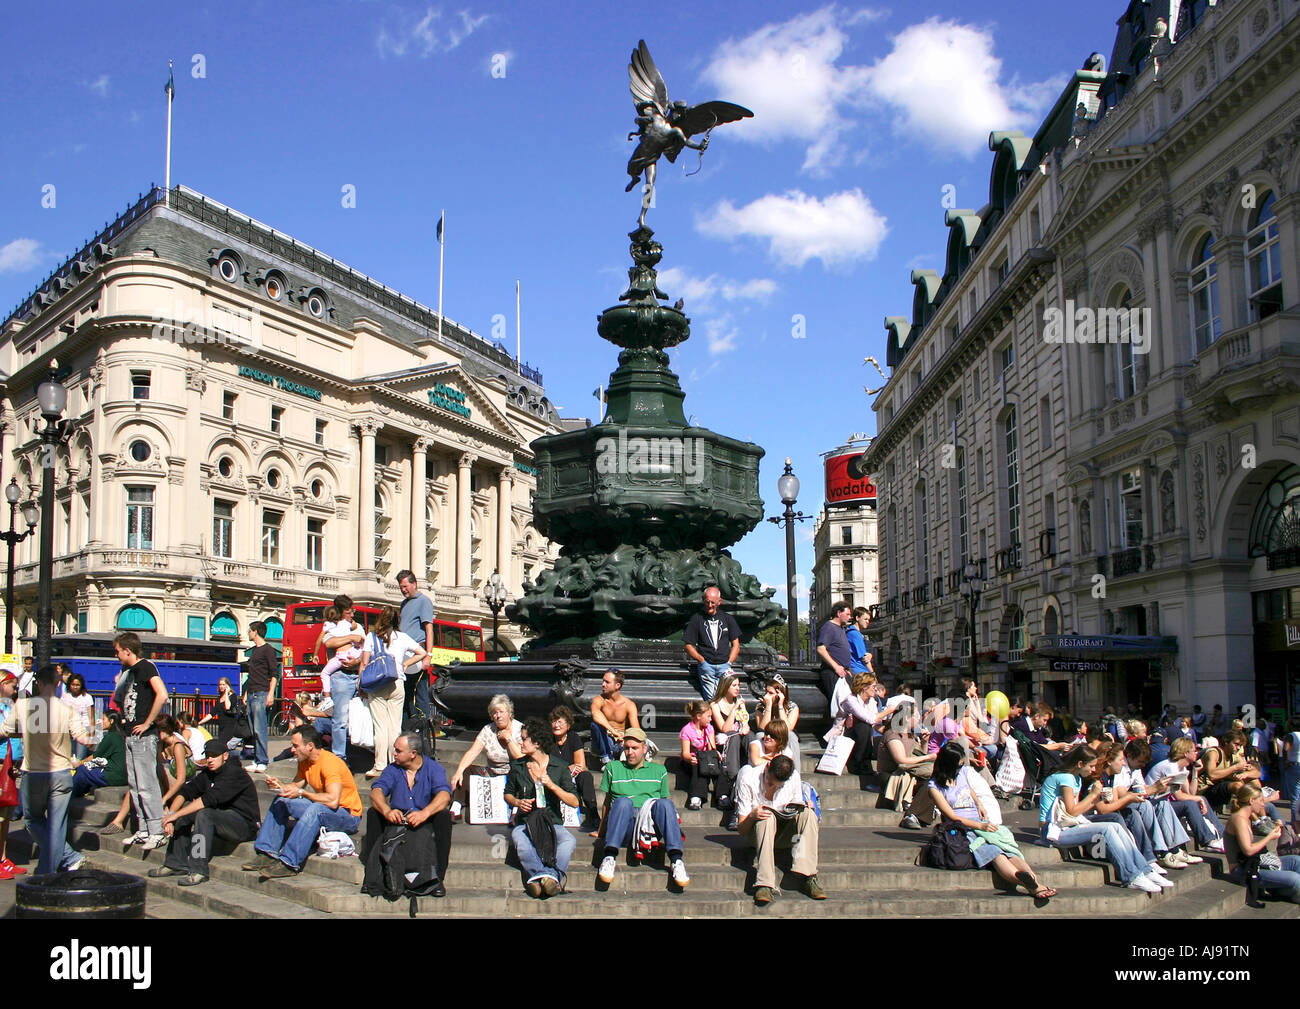 Tourists sitting by the statue of Eros, piccadilly Circus, London, England - Stock Image